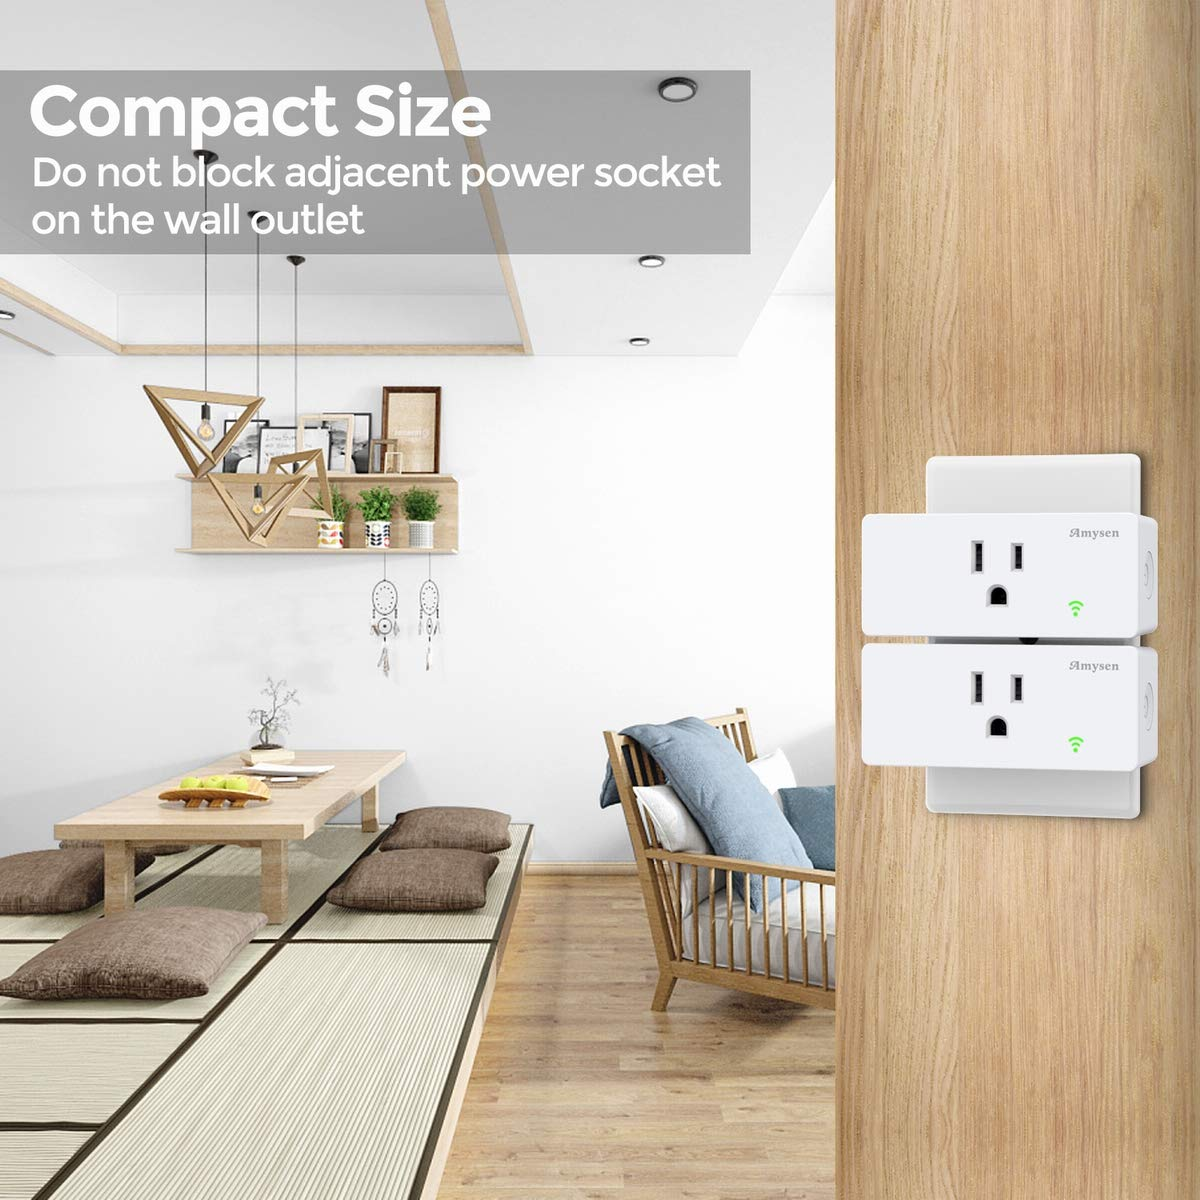 ETL Certified Smart Outlet No Hub Required Only Supports 2.4GHz Network Smart plug Amysen : Smart plug Works with Alexa Control Your Devices from Anywhere White 2 Pack Google Assistant /& IFTTT